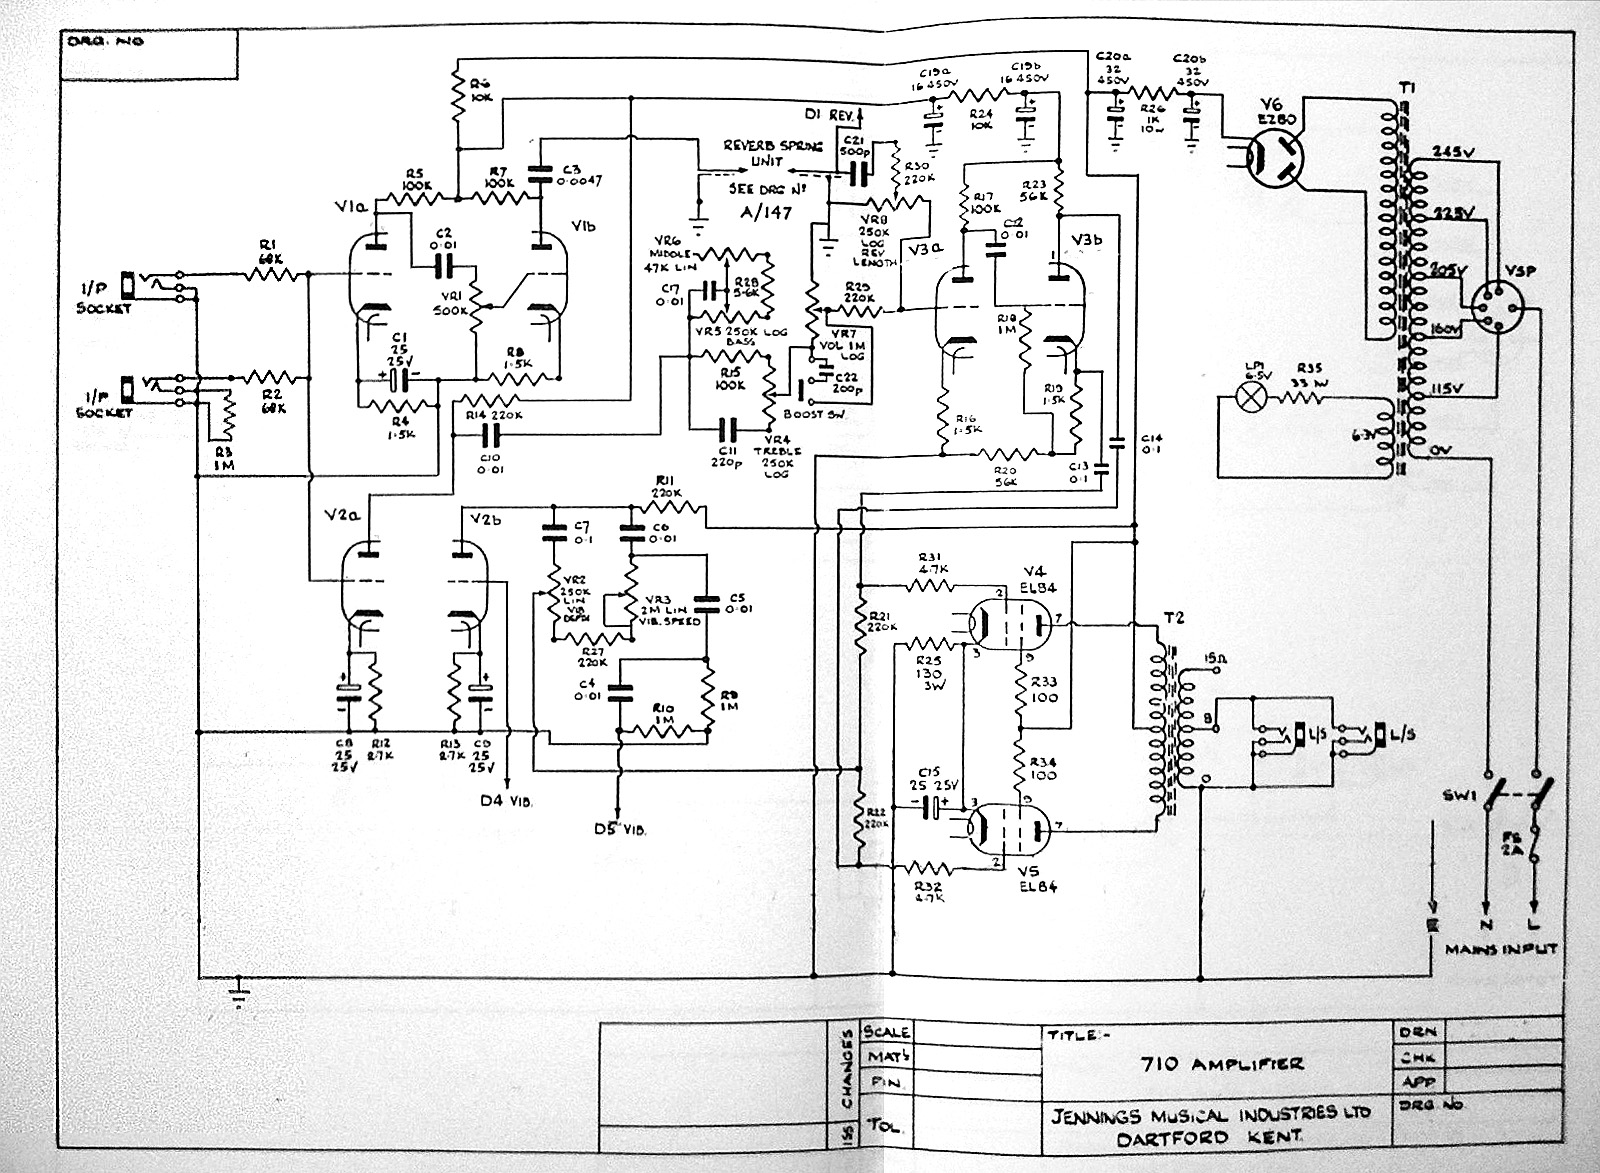 hight resolution of pathfinder boat wiring diagram wiring library pathfinder boat wiring diagram get free high quality hd wallpapers